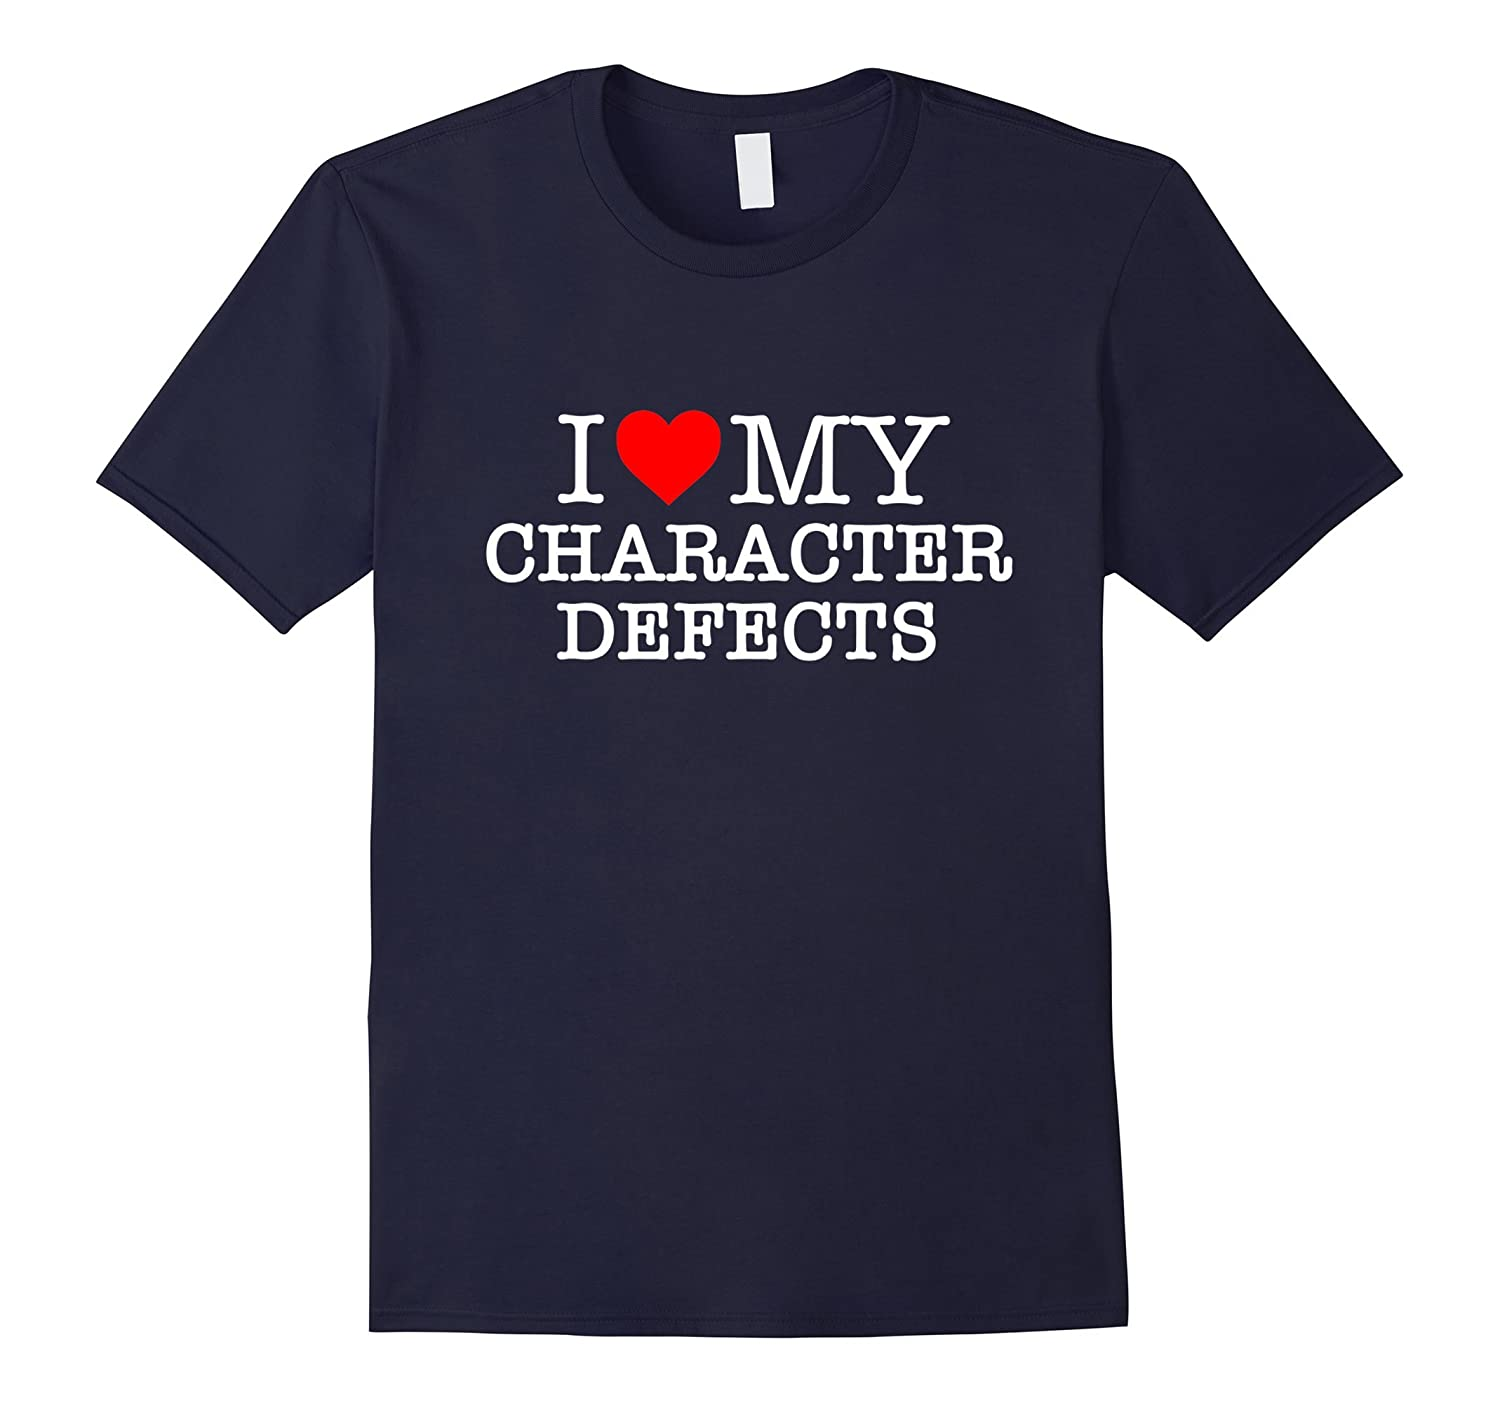 Funny AA T-Shirt – 'I Heart My Character Defects' – Recovery